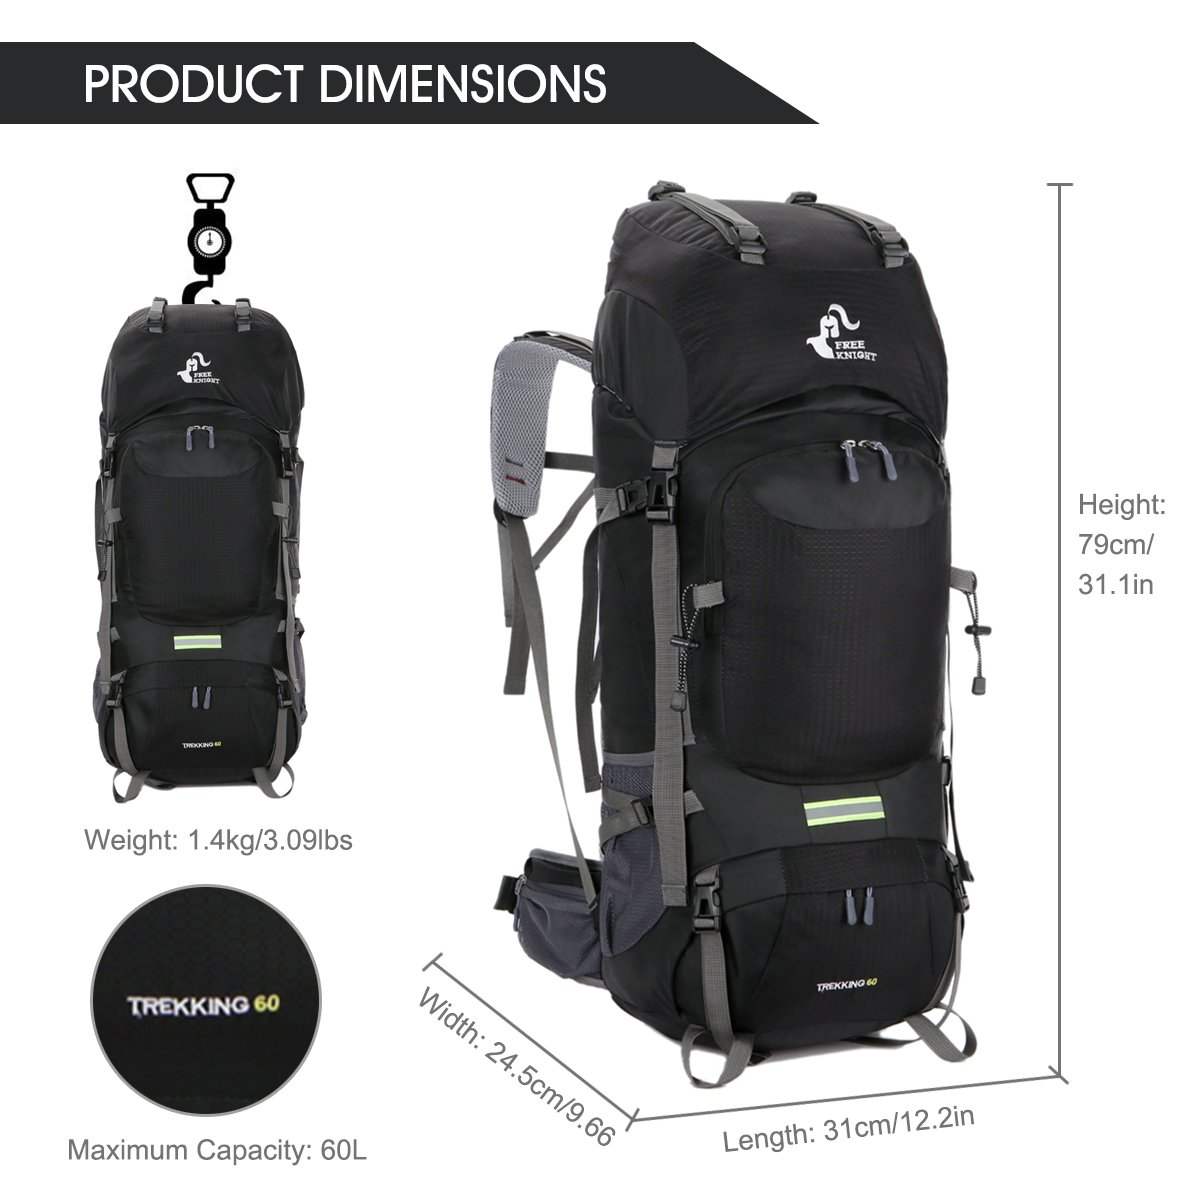 fddff877d1 Amazon.com   Free Knight 60L Hiking Backpack Mountaineering Camping Trekking  Travel Bag Large Capacity Rucksack Internal Frame Water Resistant for  Outdoor